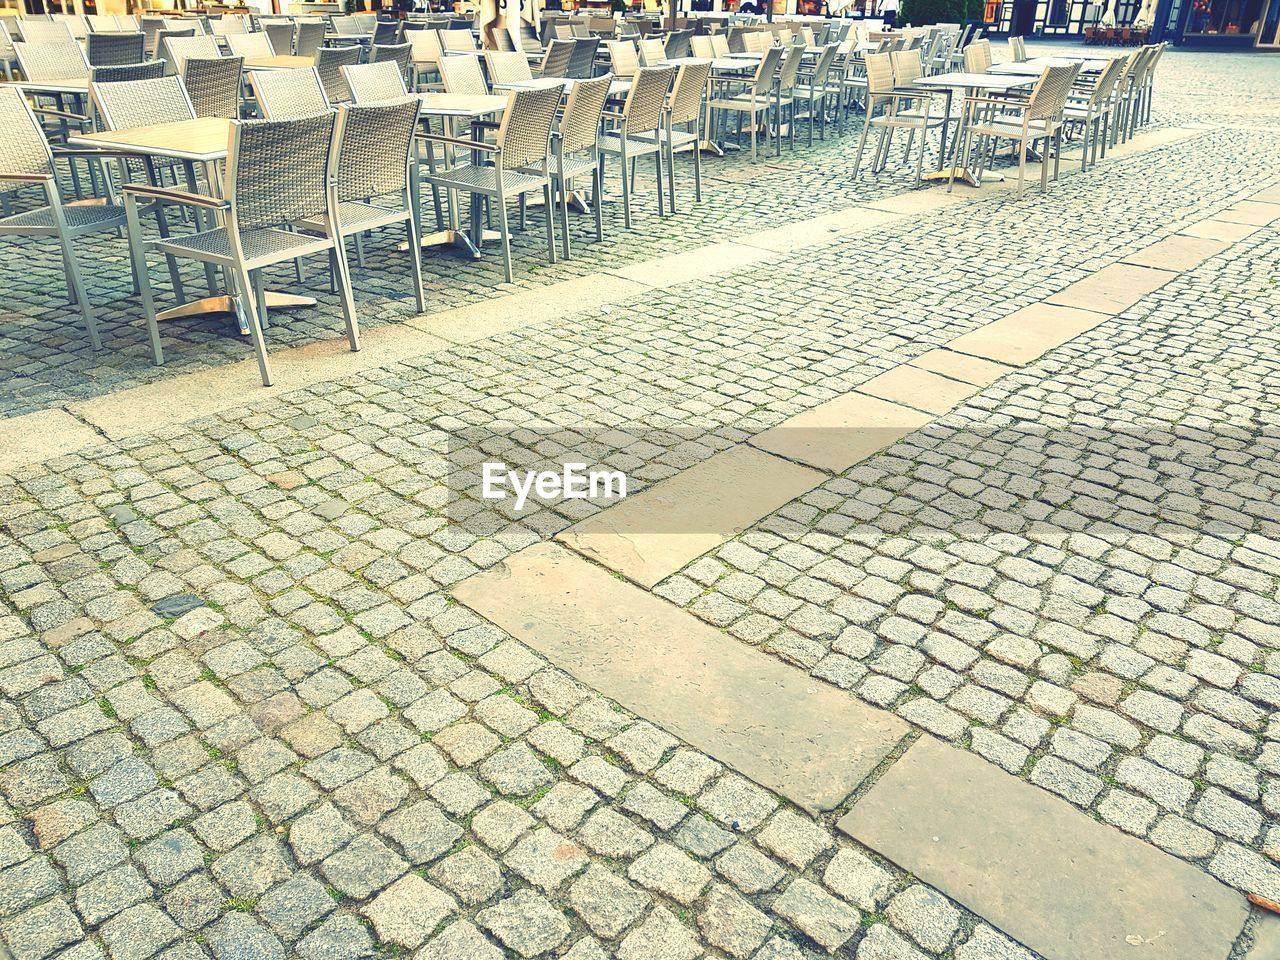 cobblestone, seat, street, stone, paving stone, footpath, chair, no people, city, day, high angle view, absence, architecture, in a row, empty, flooring, outdoors, arrangement, sidewalk, pattern, order, tiled floor